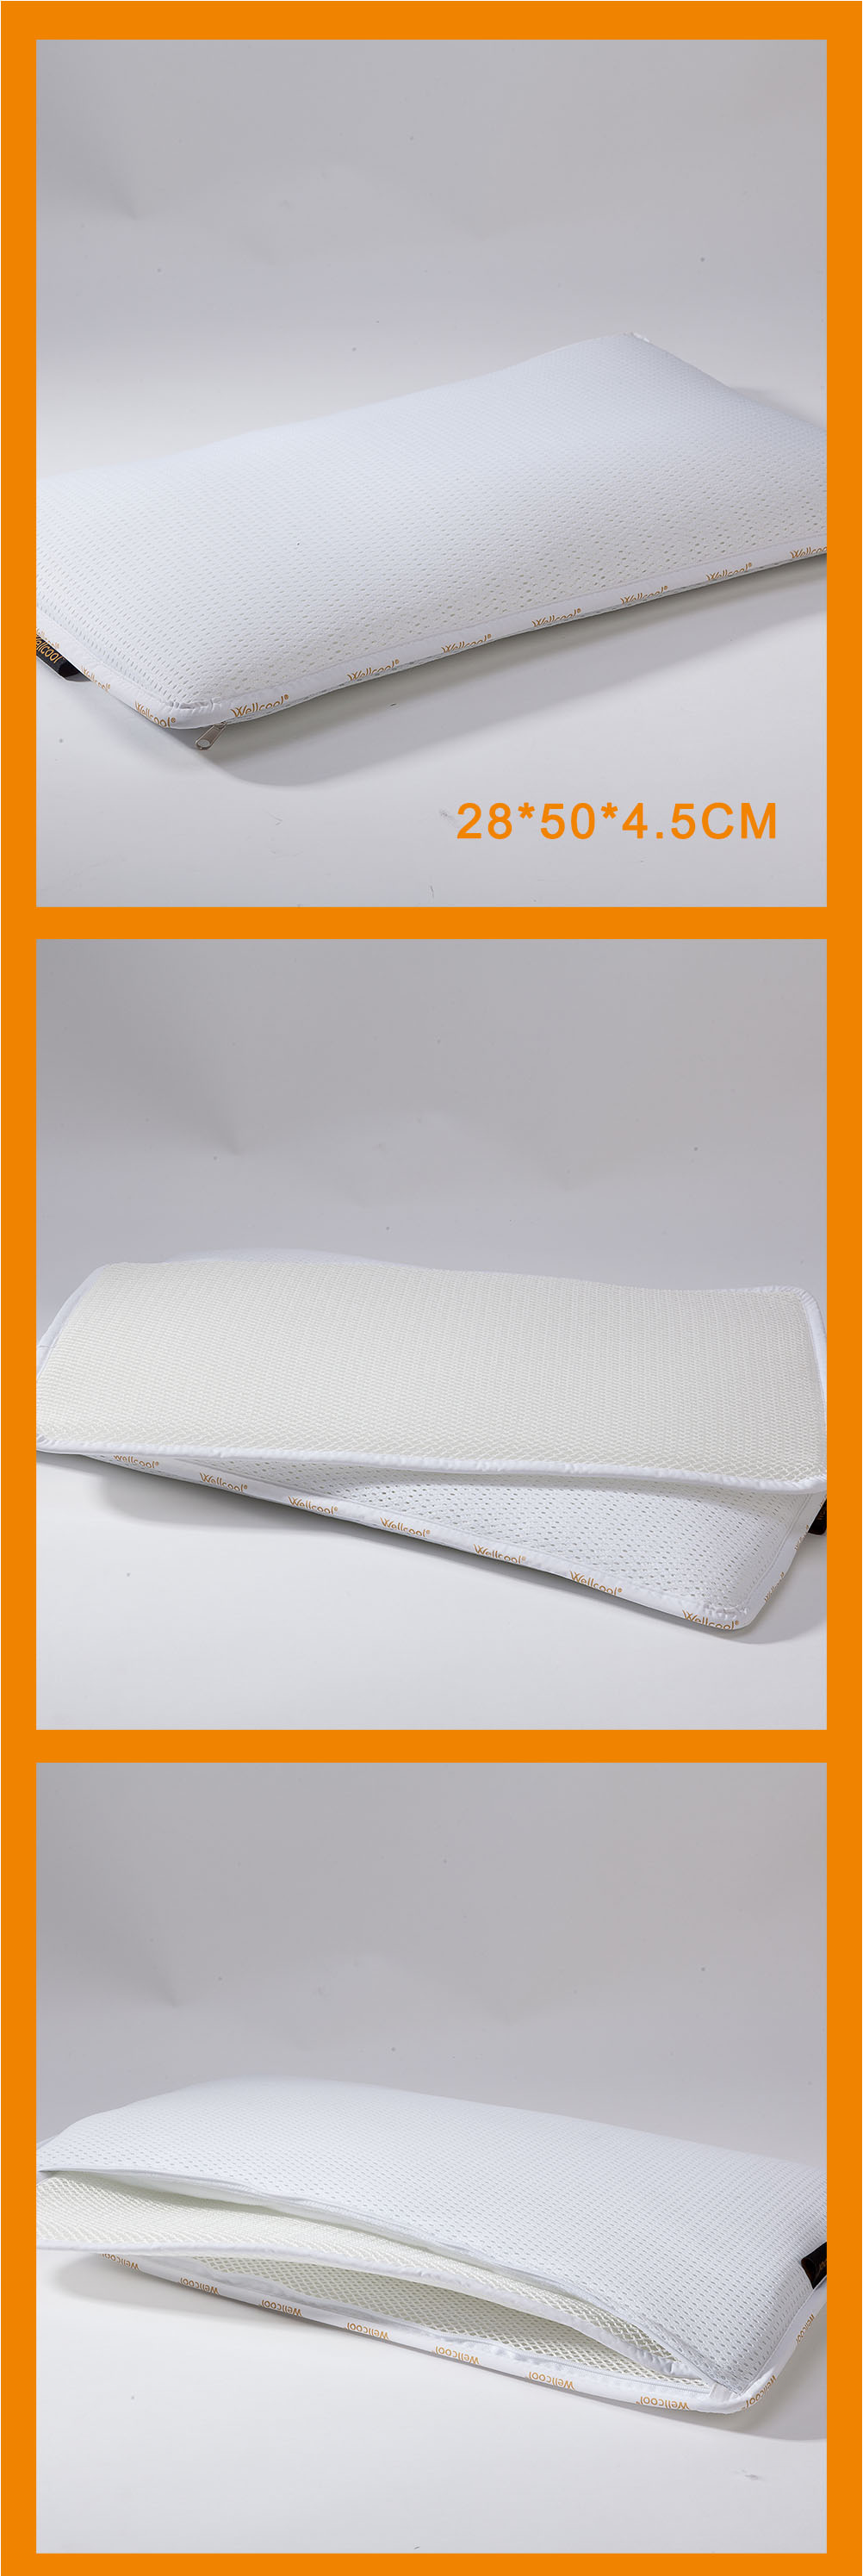 Airflow spacer mesh fabric height adjustable pillow with 4 pieces core liner